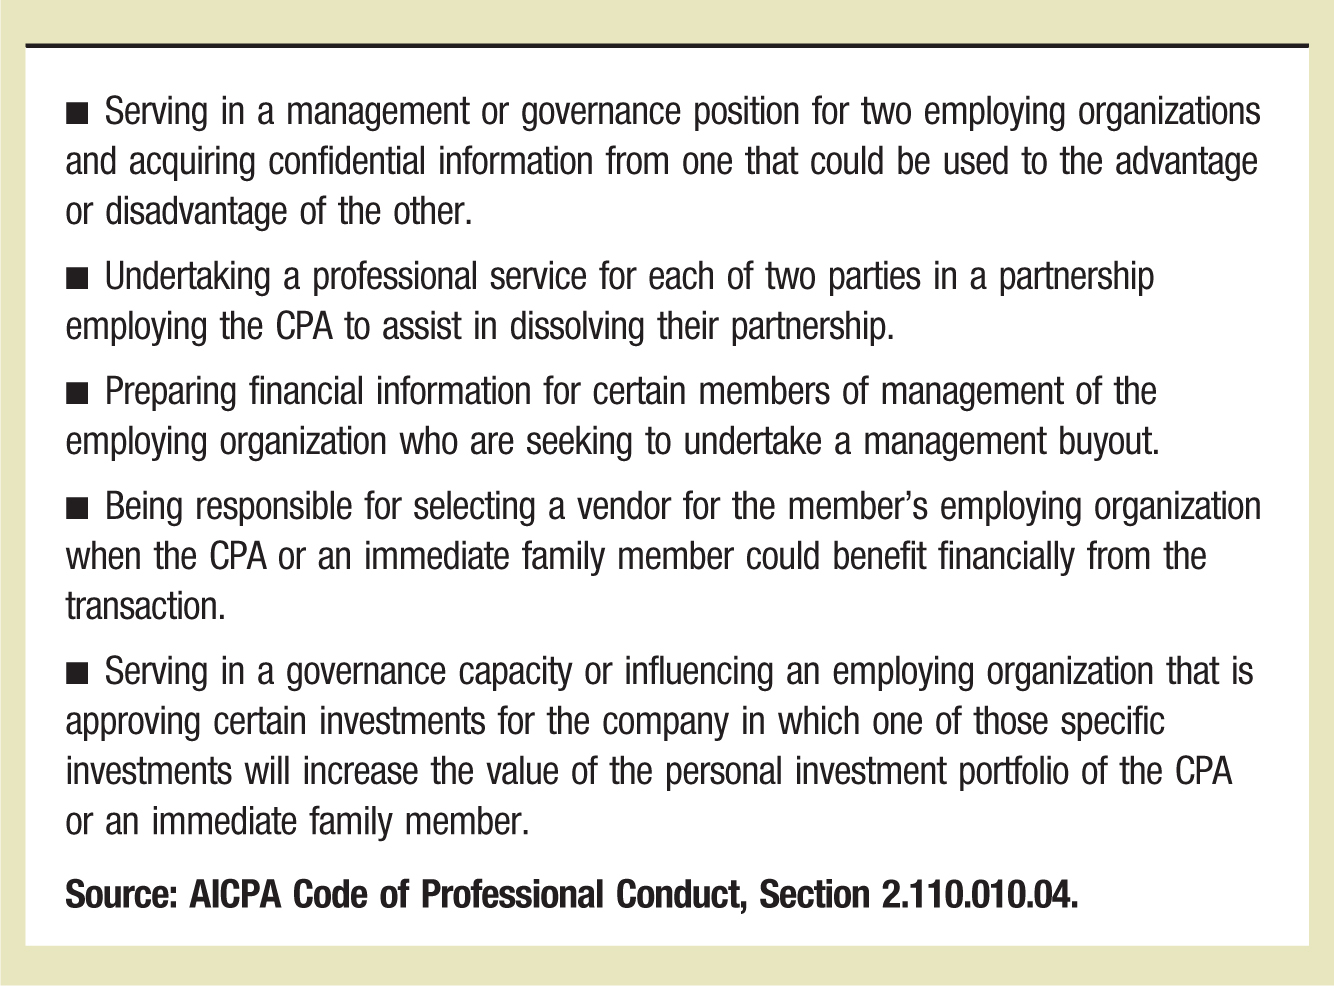 ▪ Serving in a management or governance position for two employing organizations and acquiring confidential information from one that could be used to the advantage or disadvantage of the other. ▪ Undertaking a professional service for each of two parties in a partnership employing the CPA to assist in dissolving their partnership. ▪ Preparing financial information for certain members of management of the employing organization who are seeking to undertake a management buyout. ▪ Being responsible for selecting a vendor for the member